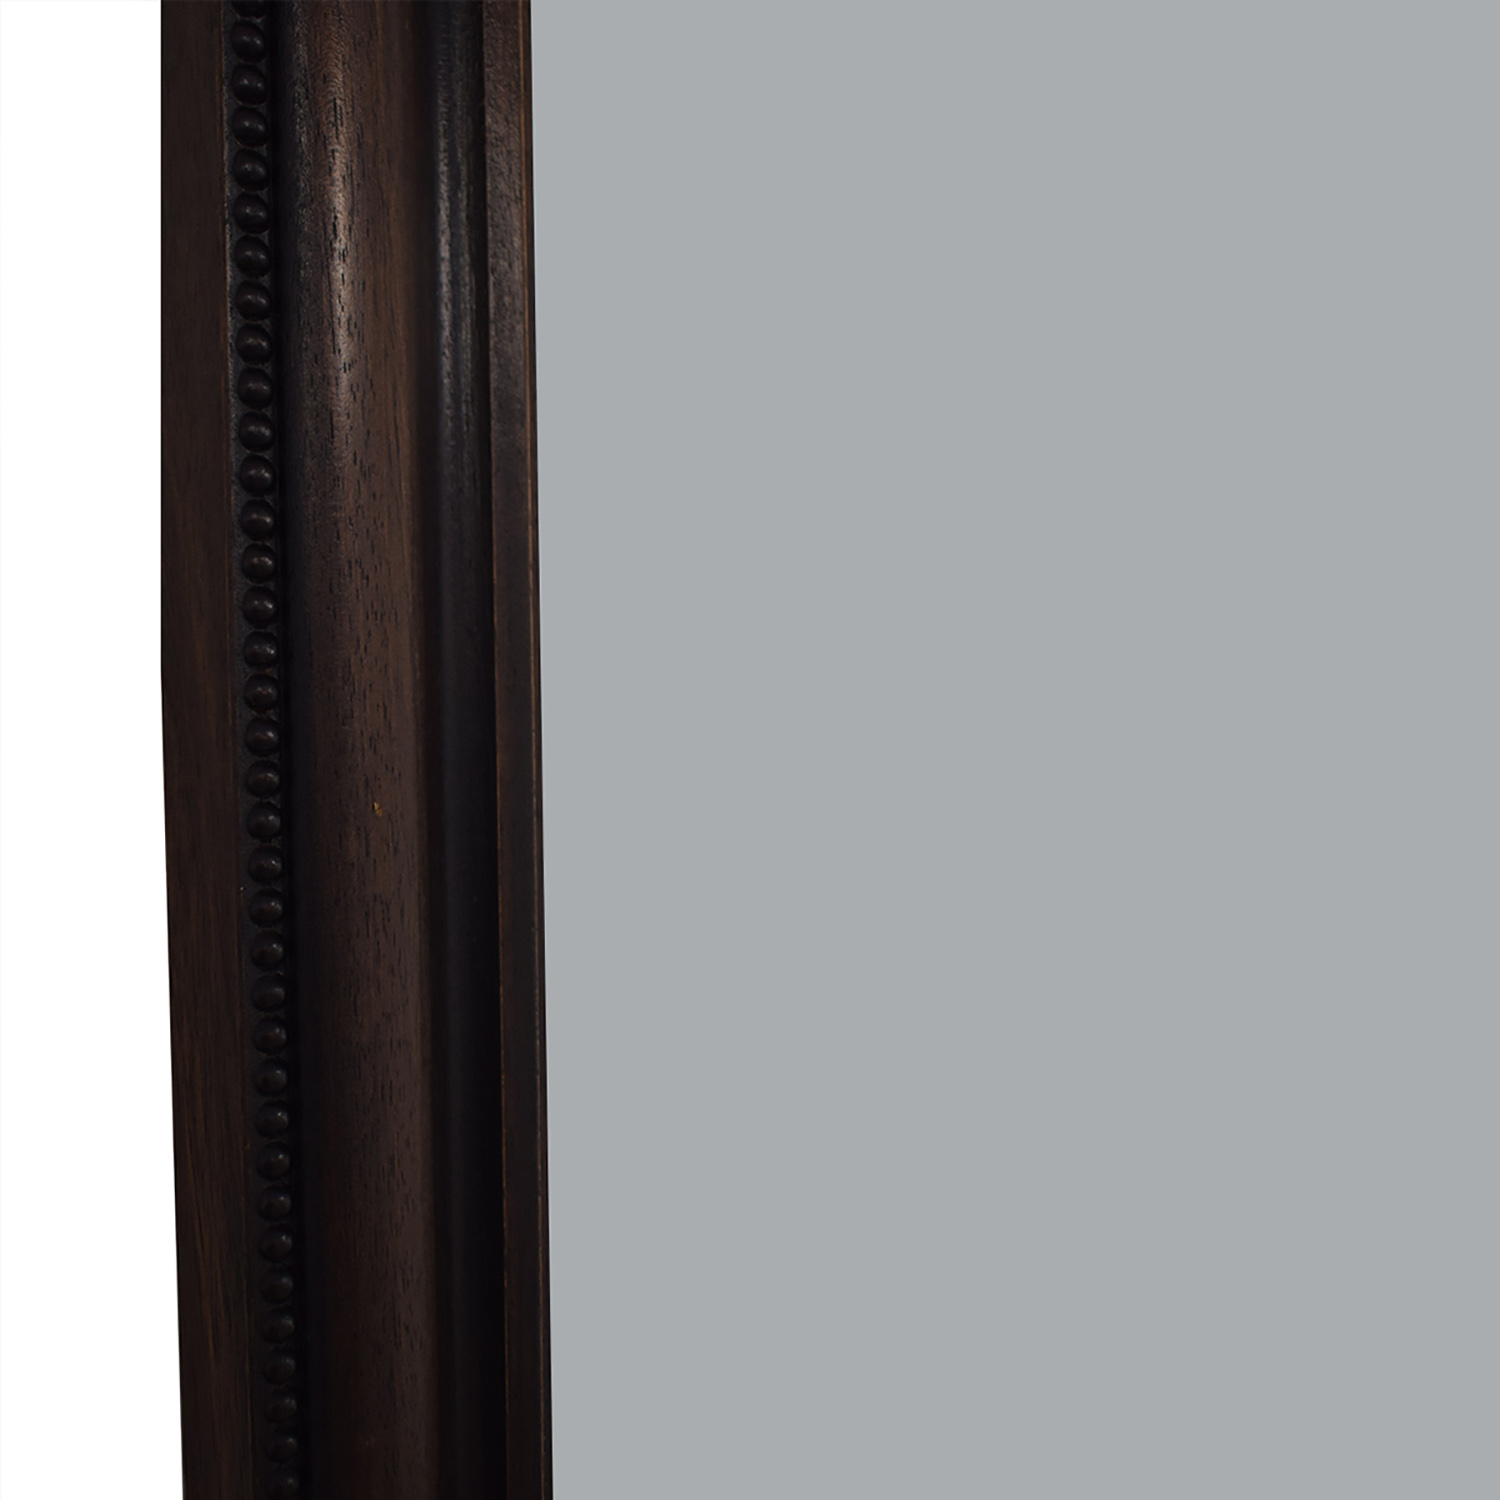 Pottery Barn Pottery Barn Large Mirror on sale